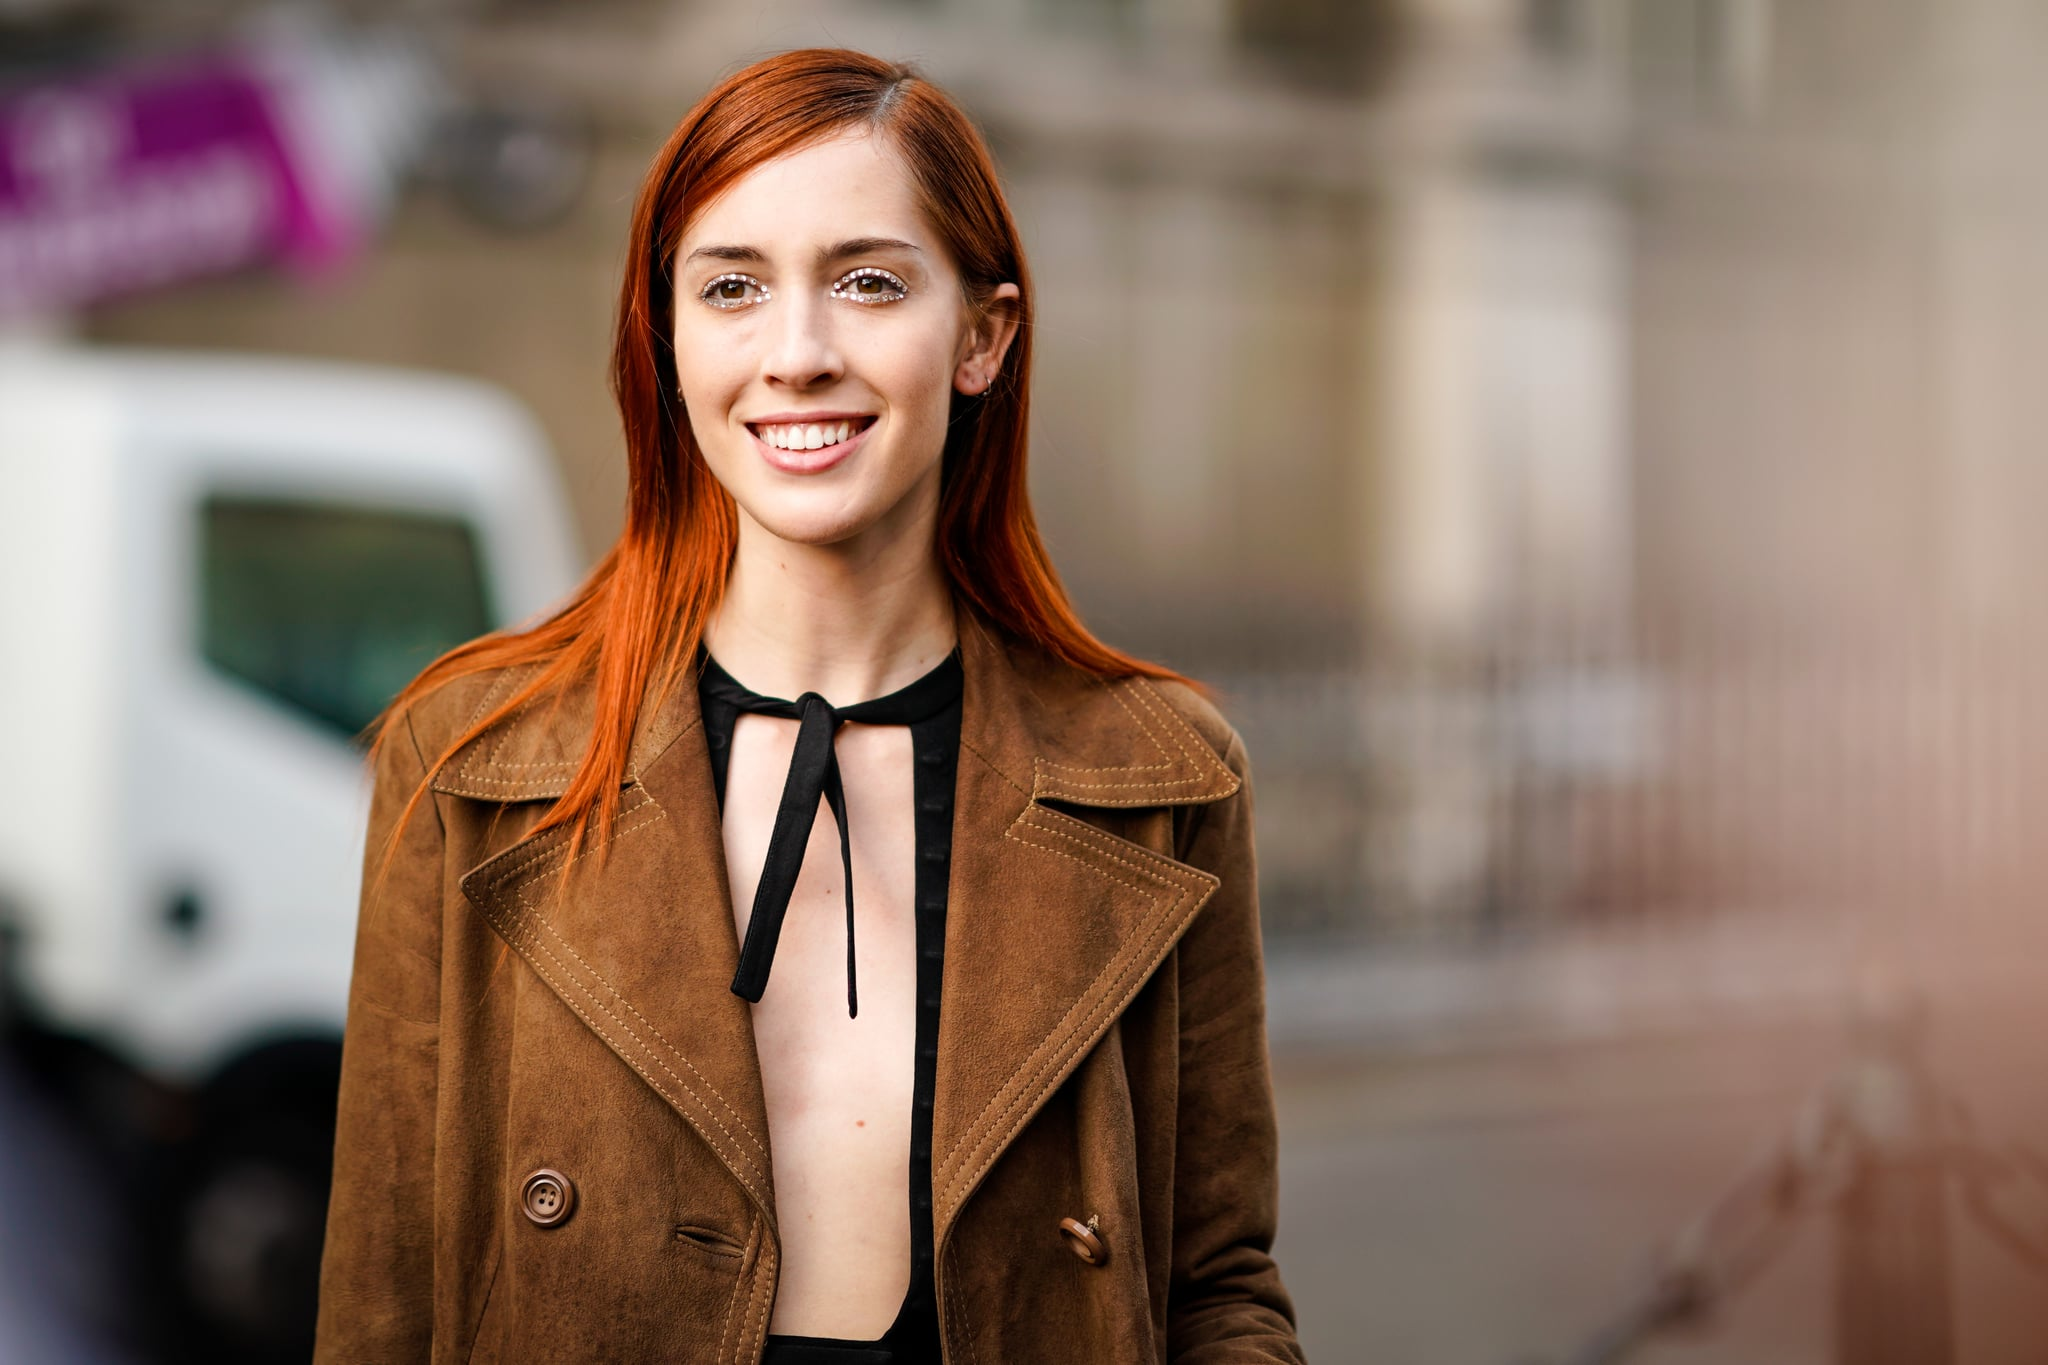 PARIS, FRANCE - SEPTEMBER 27:  Teddy Quinlivan, model, wears a brown suede trench coat, outside the Dries Van Noten show, during Paris Fashion Week Womenswear Spring/Summer 2018, on September 27, 2017 in Paris, France.  (Photo by Edward Berthelot/Getty Images)